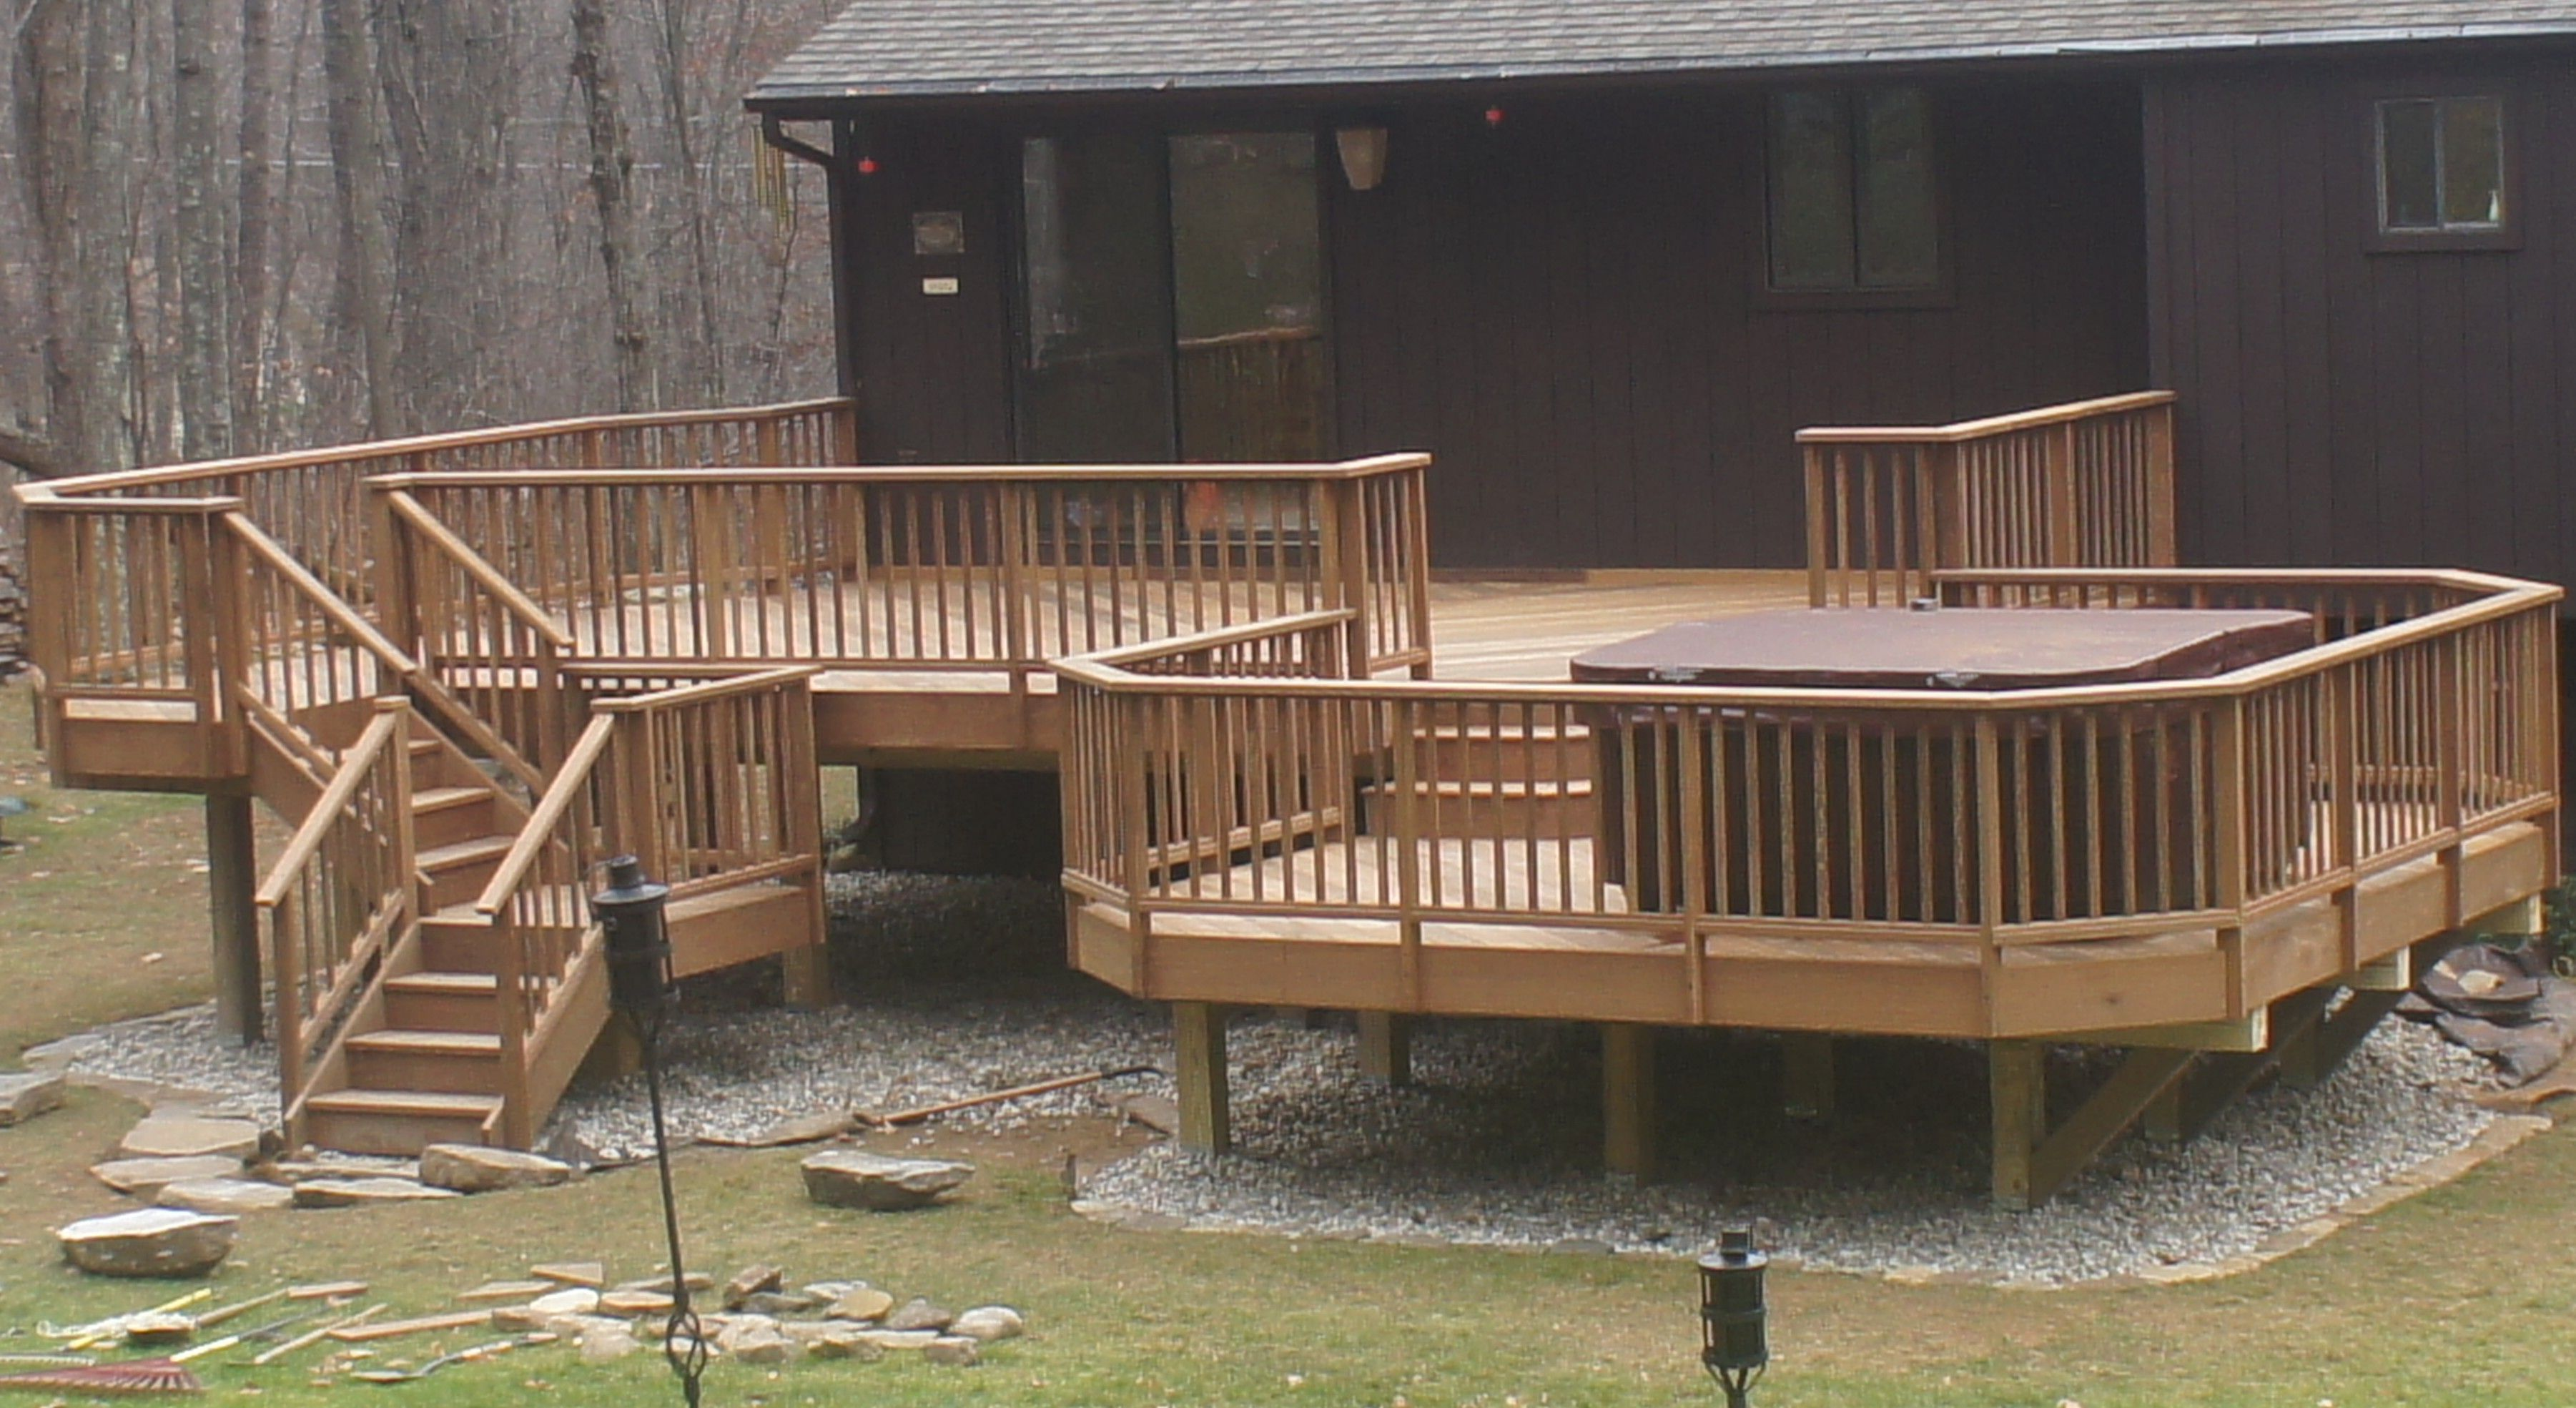 Outdoor Hot Tub Ideas Collection Of Deck Pictures And